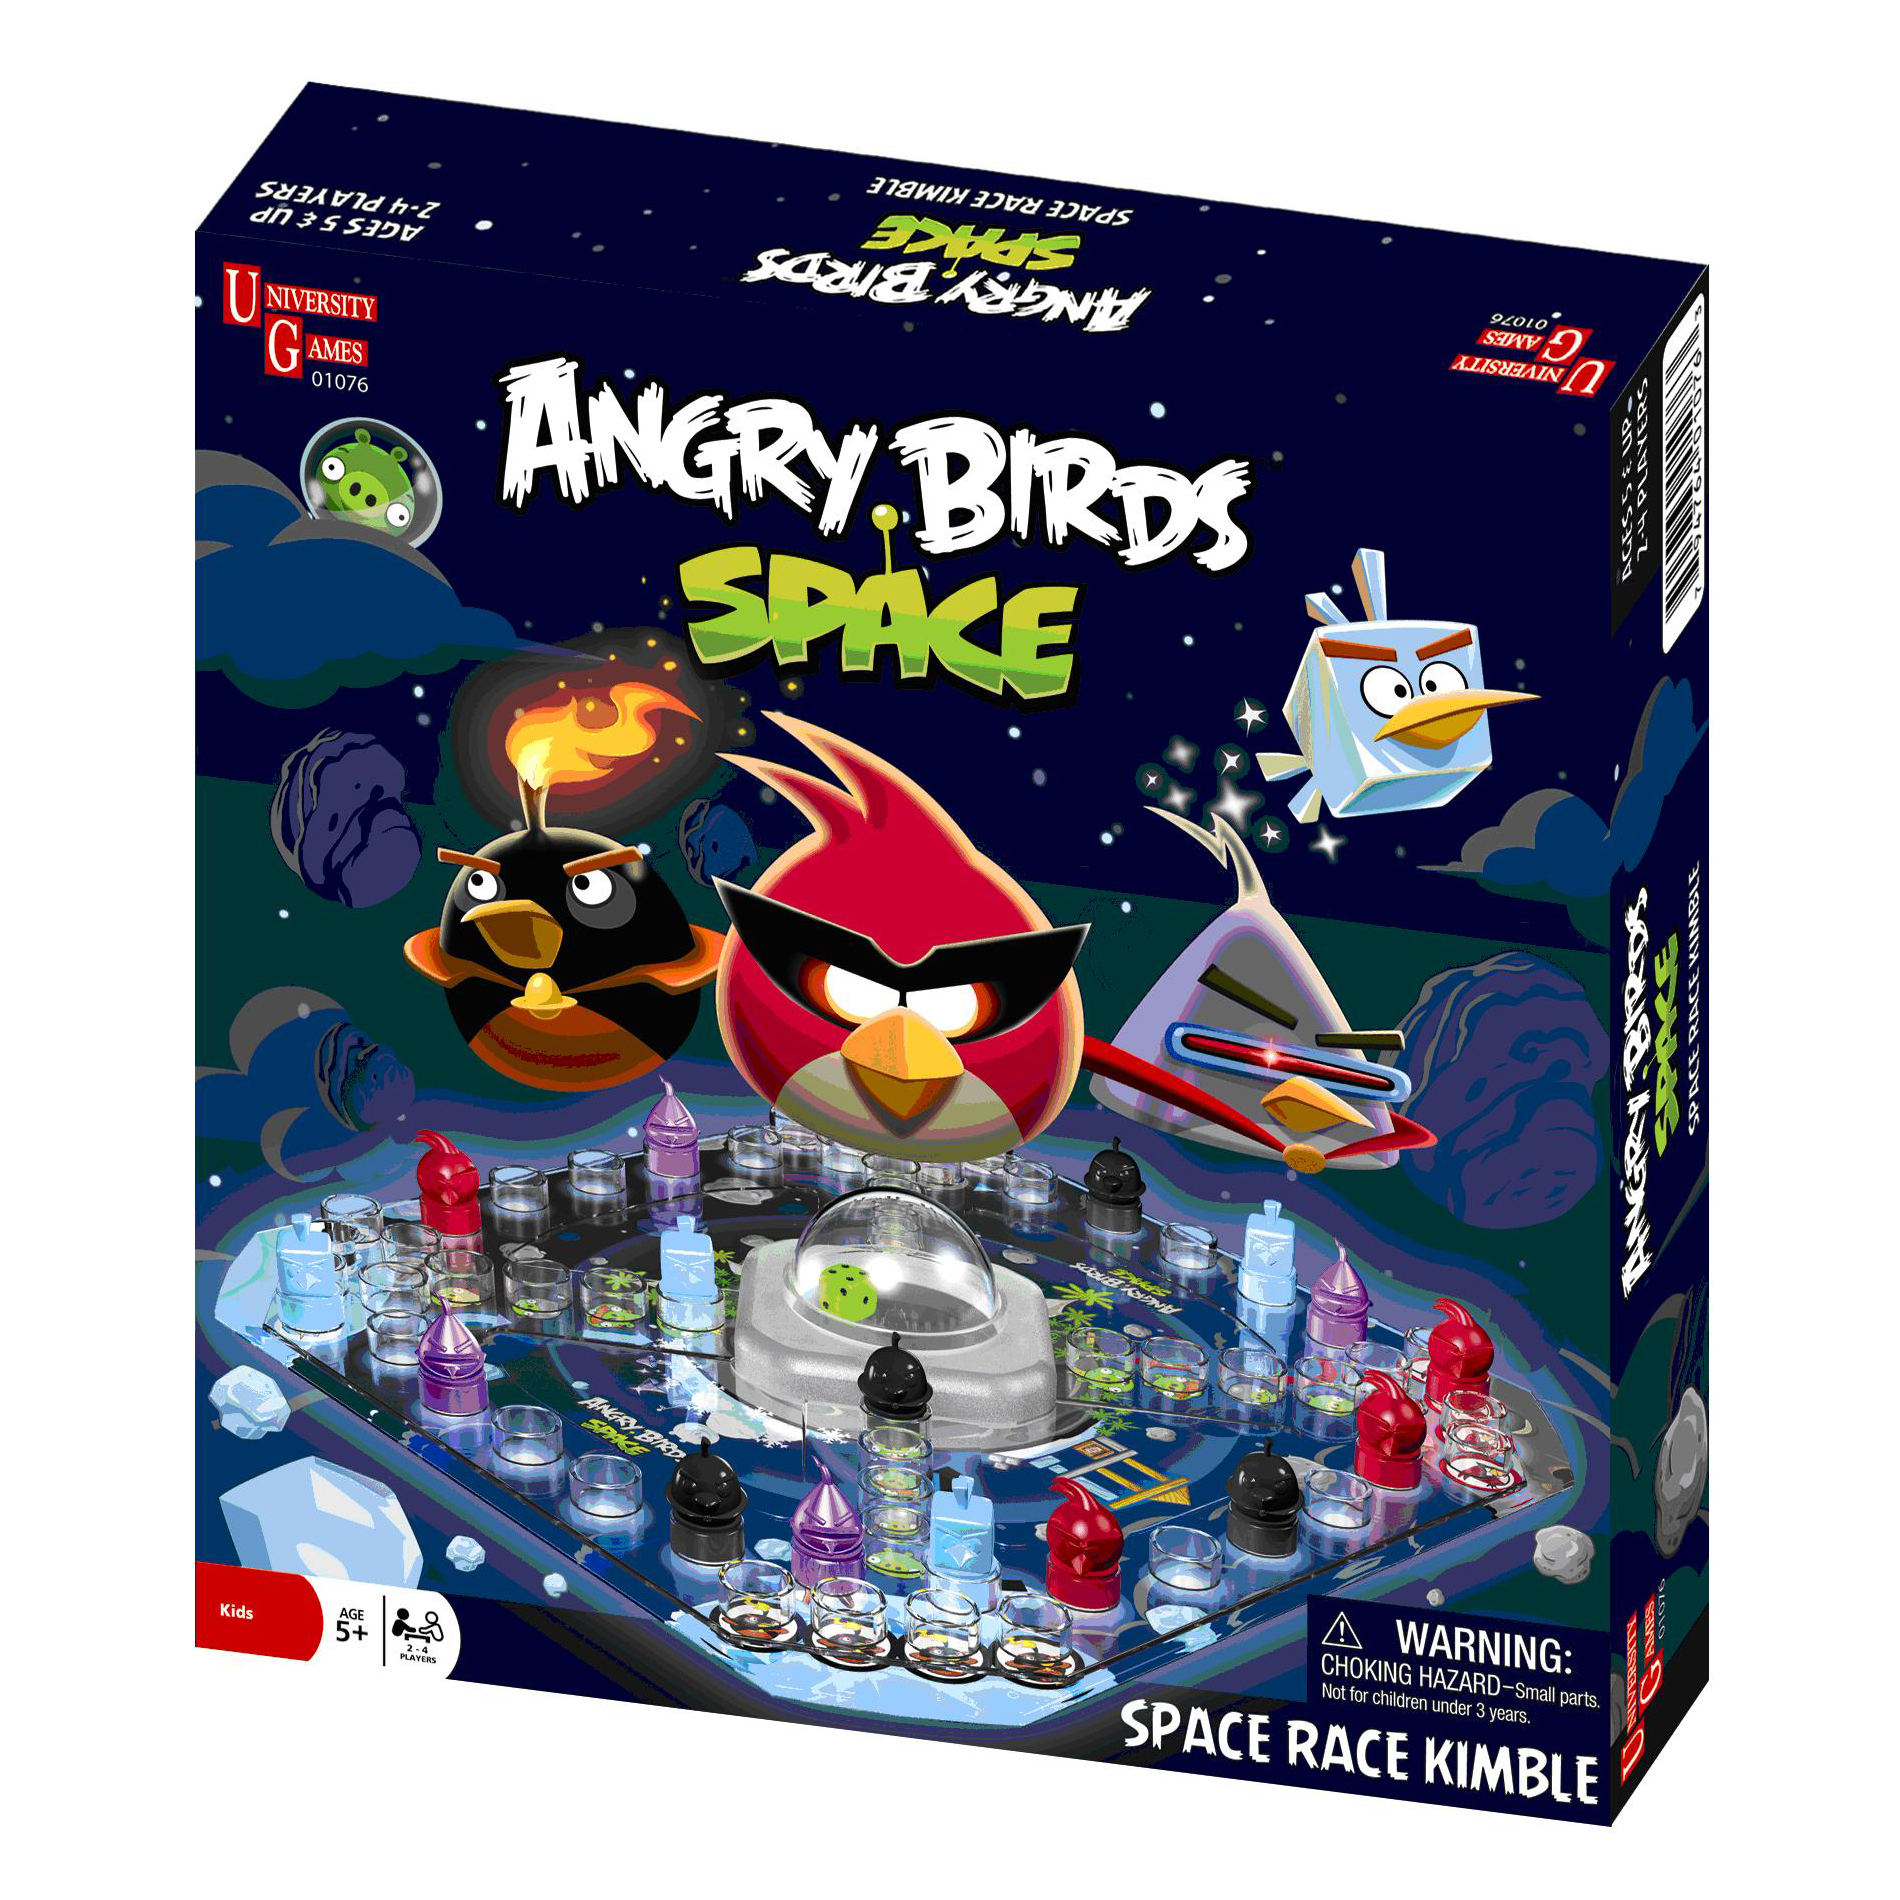 Angry Birds Space Toys : University games angry birds space race toys